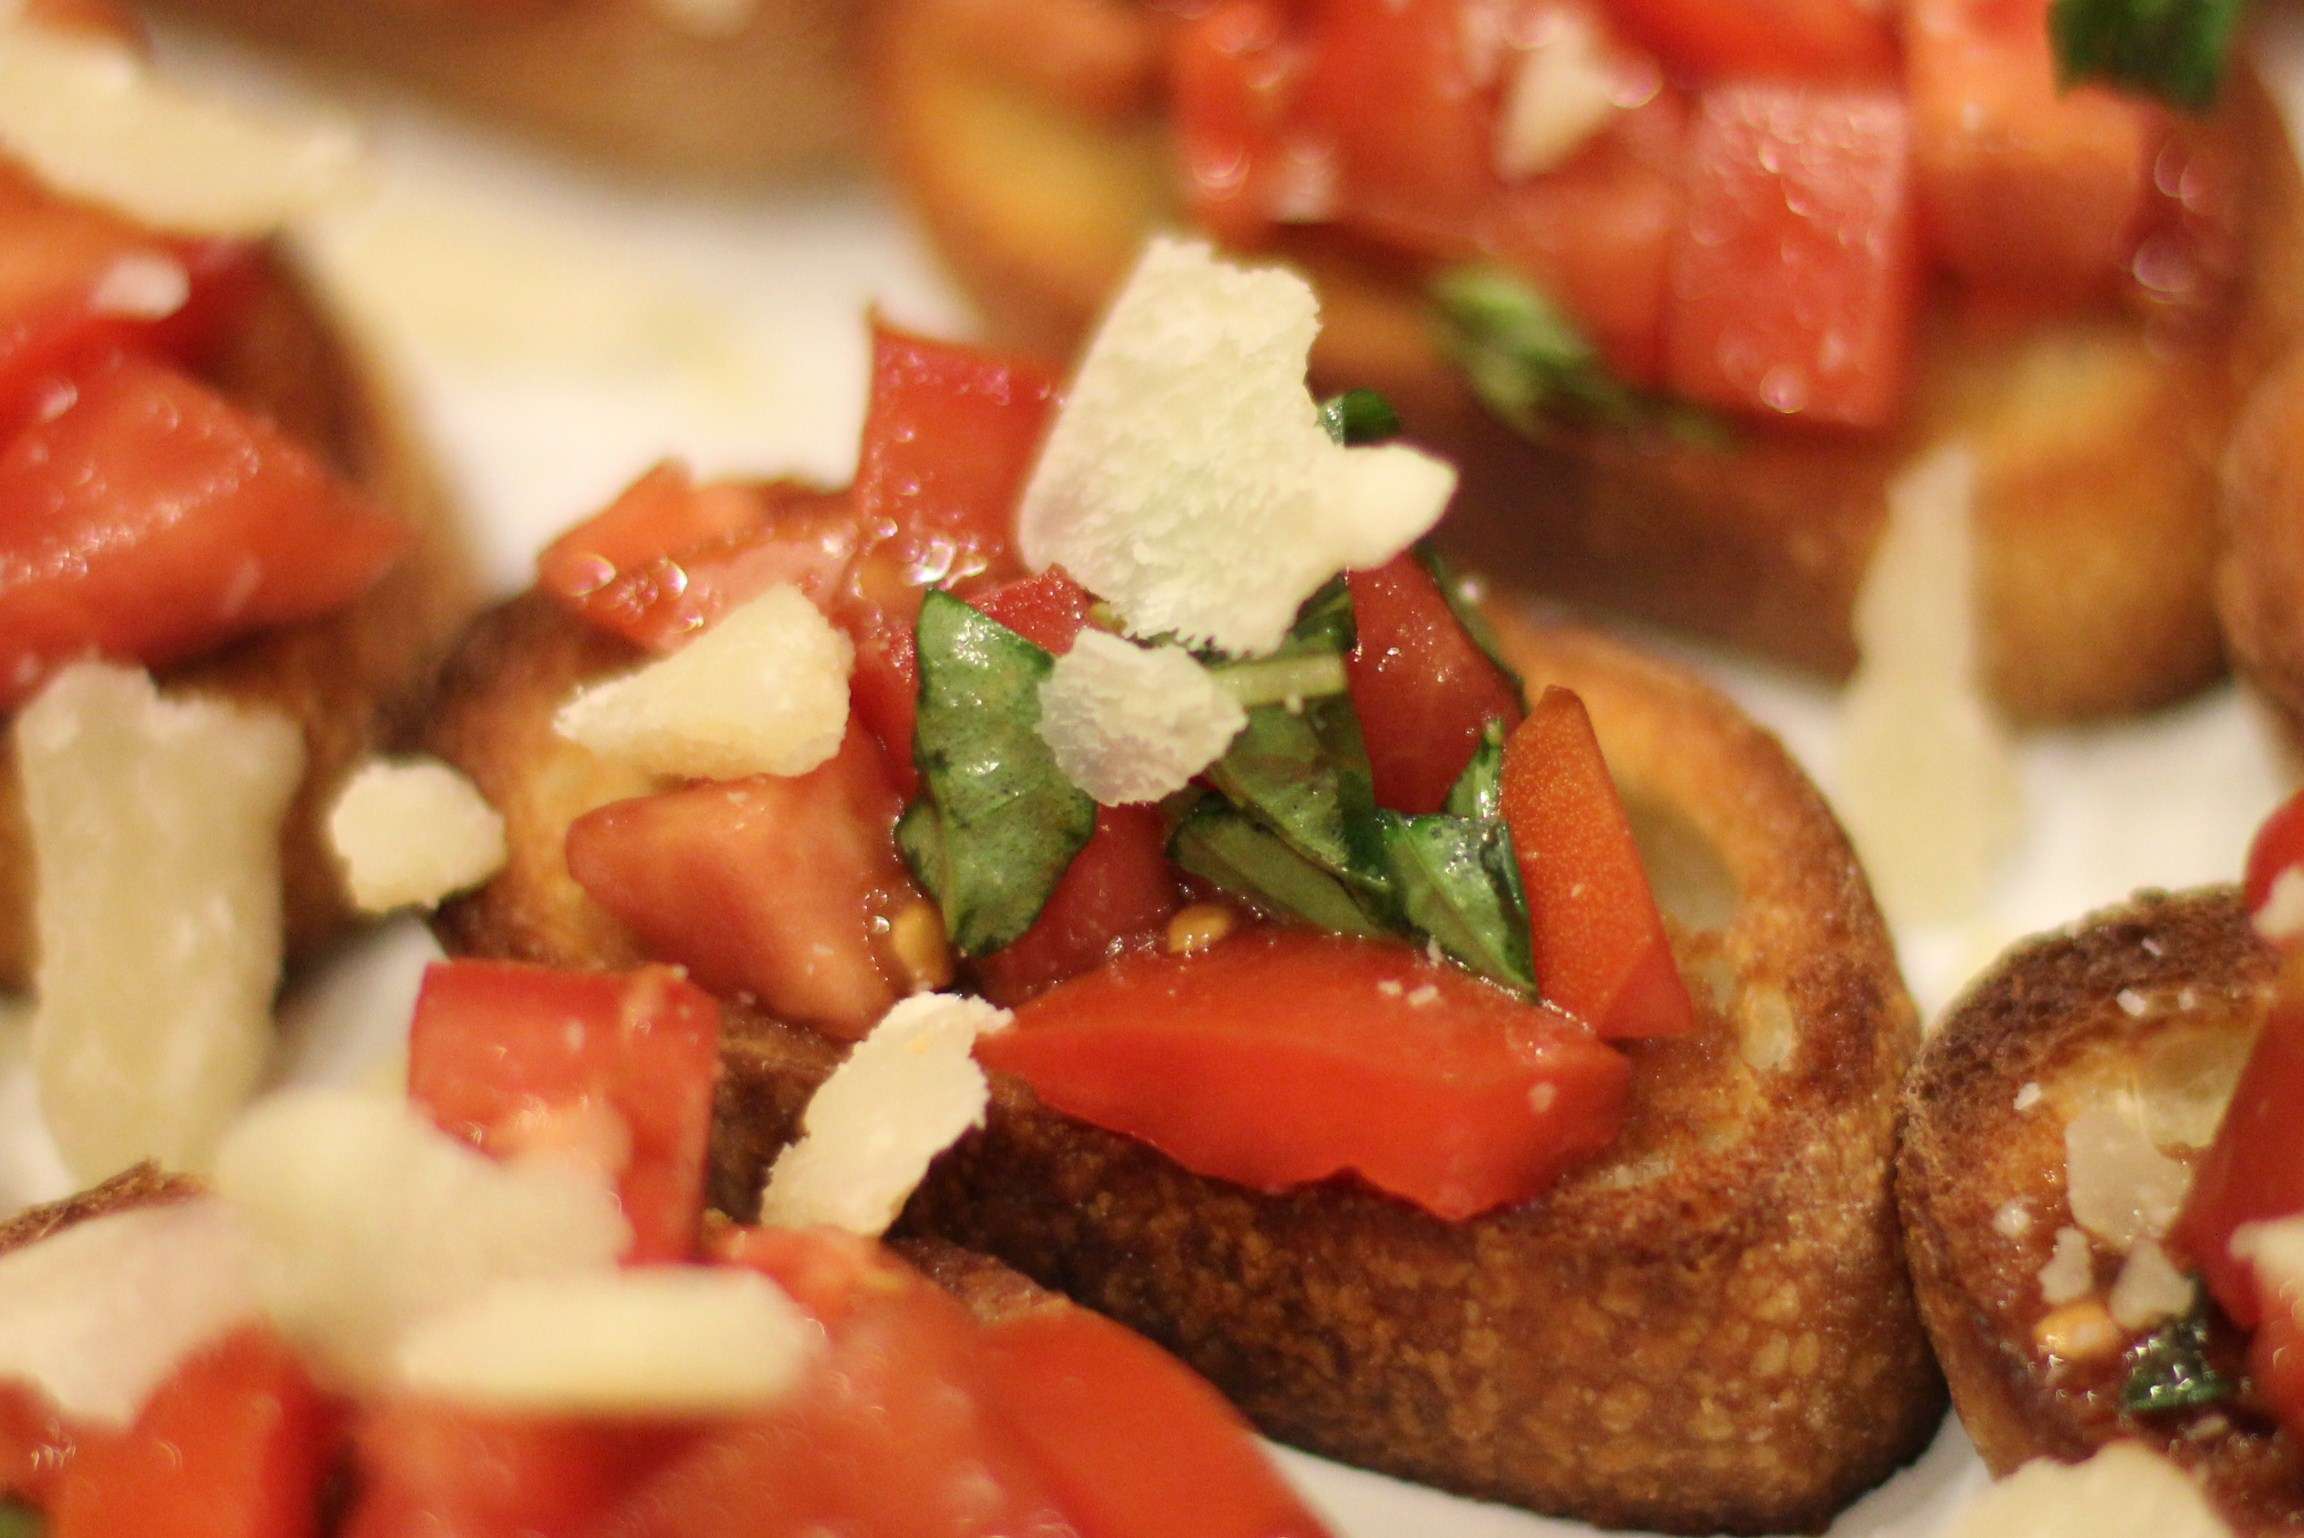 Recipe: How To Make Bruschetta